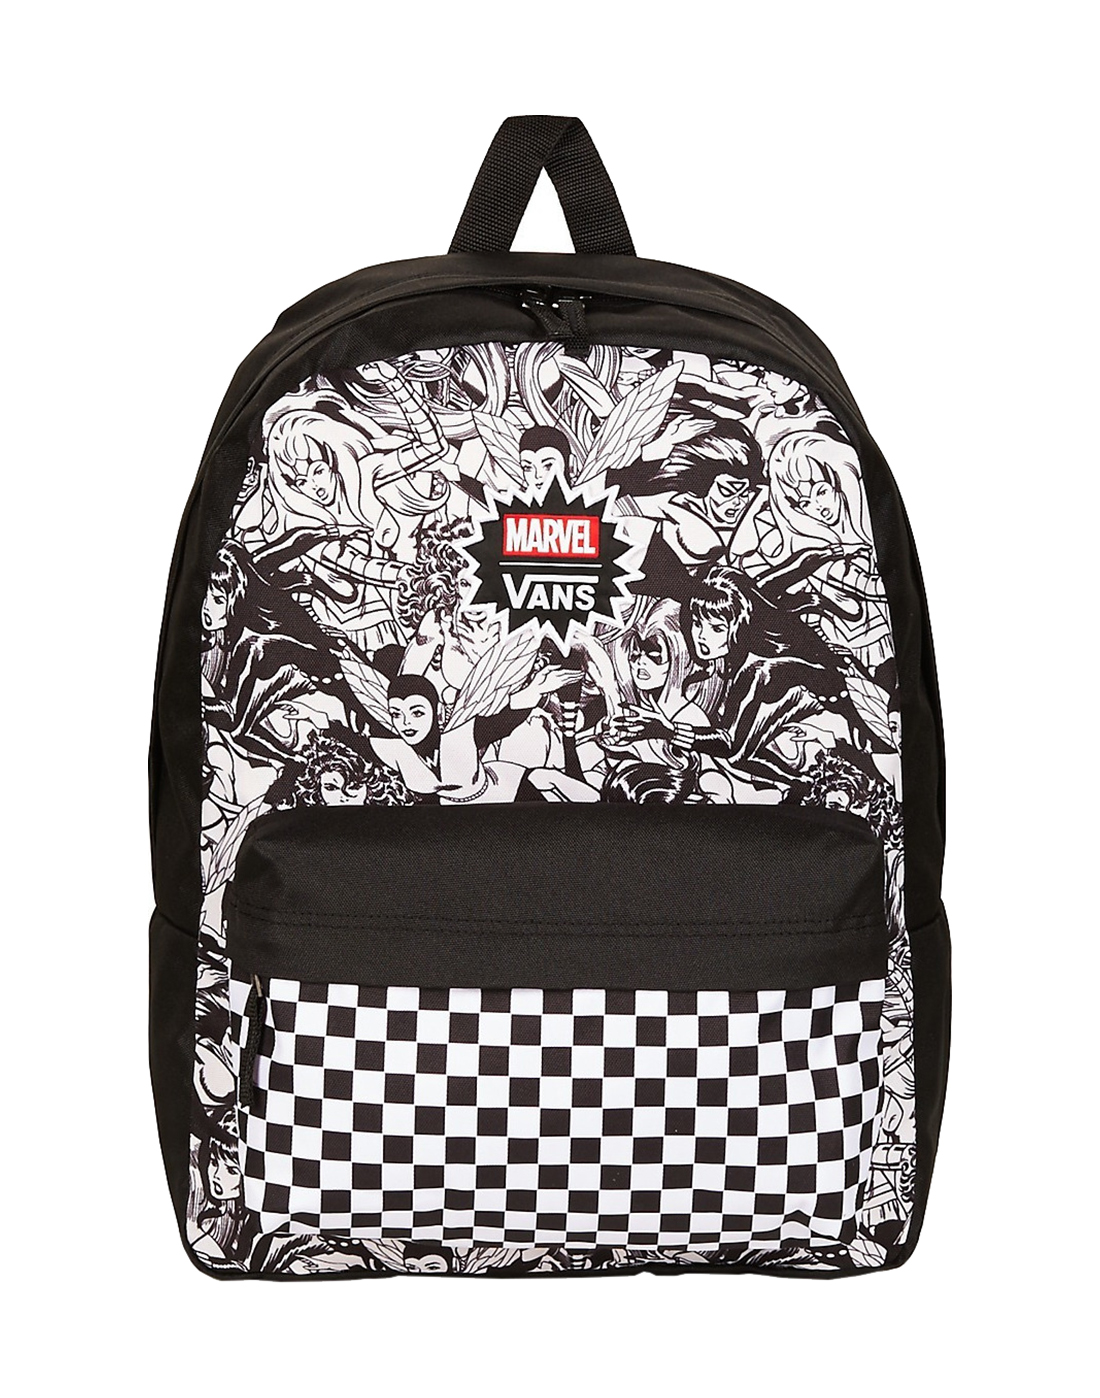 4bce367eea Vans Women Of Marvel Backpack | Life Style Sports